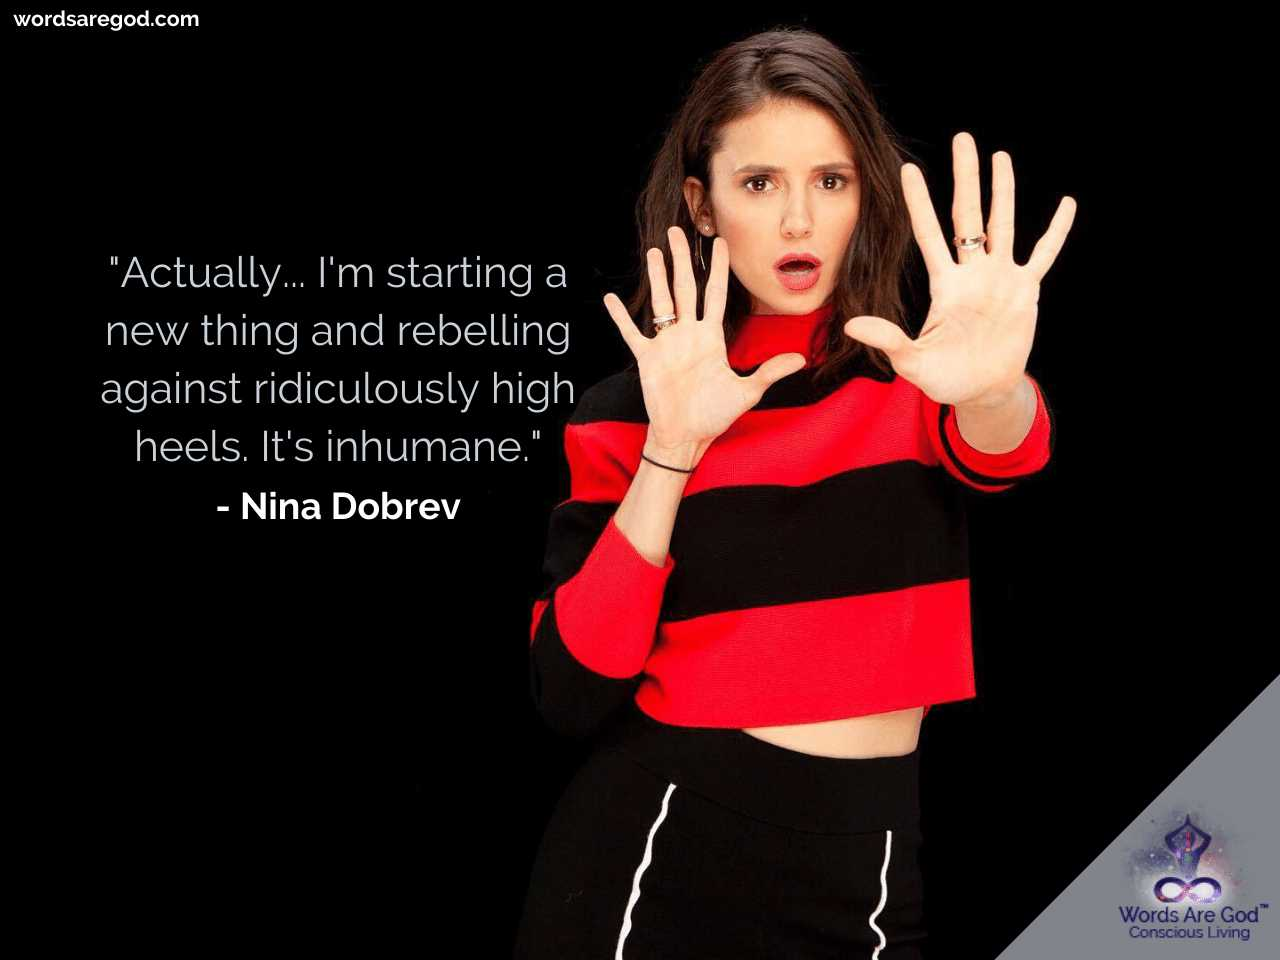 Nina Dobrev Inspirational Quotes